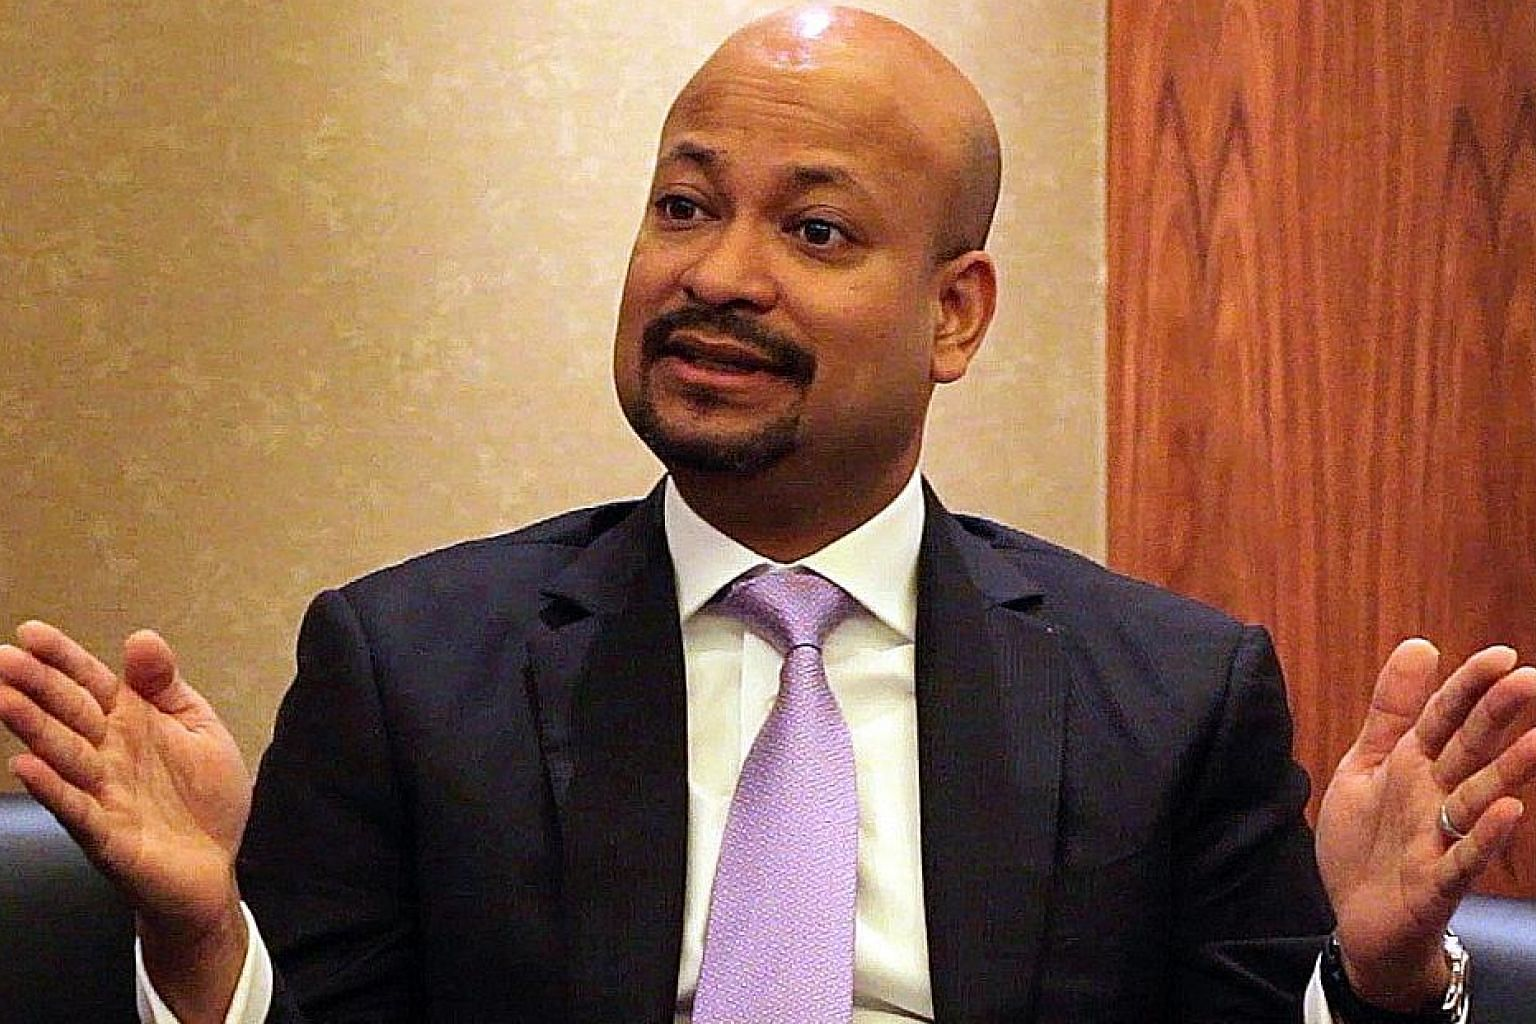 1MDB chief Arul Kanda personally oversaw the dry run for Prime Minister Najib Razak's visit to the Bandar Malaysia development last Tuesday, but the lavish party was scrapped after the deal was aborted last Wednesday.